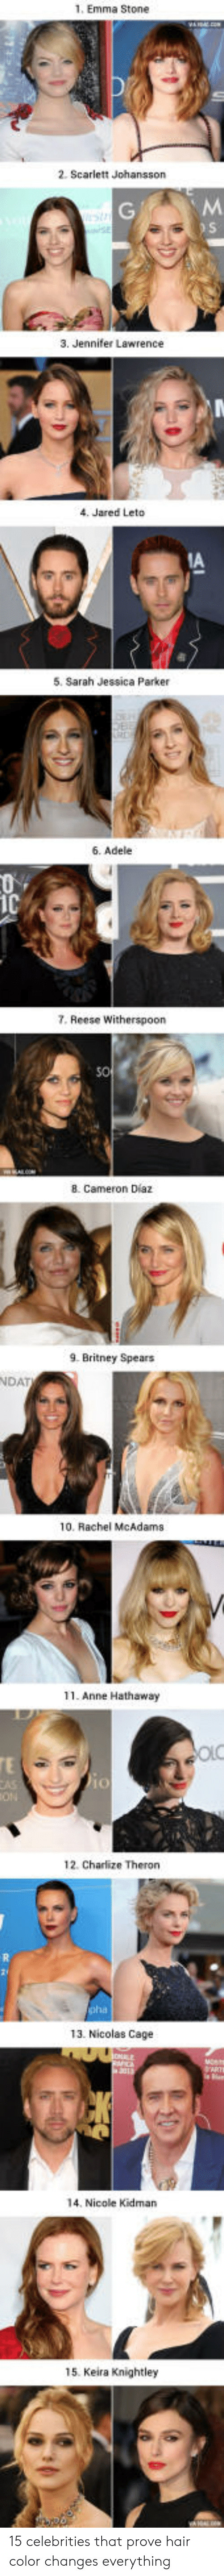 Adele, Britney Spears, and Nicolas Cage: 1, Emma Stone  2. Scarlett Johansson  4. Jared Leto  5. Sarah Jessica Parker  6. Adele  7. Reese Witherspoon  B Cameron Diaz  9. Britney Spears  10. Rachel McAdams  11. Anne Hathaway  TE  ON  12. Charlize Theron  13. Nicolas Cage  14, Nicole Kidman  15 Keira Knightley 15 celebrities that prove hair color changes everything